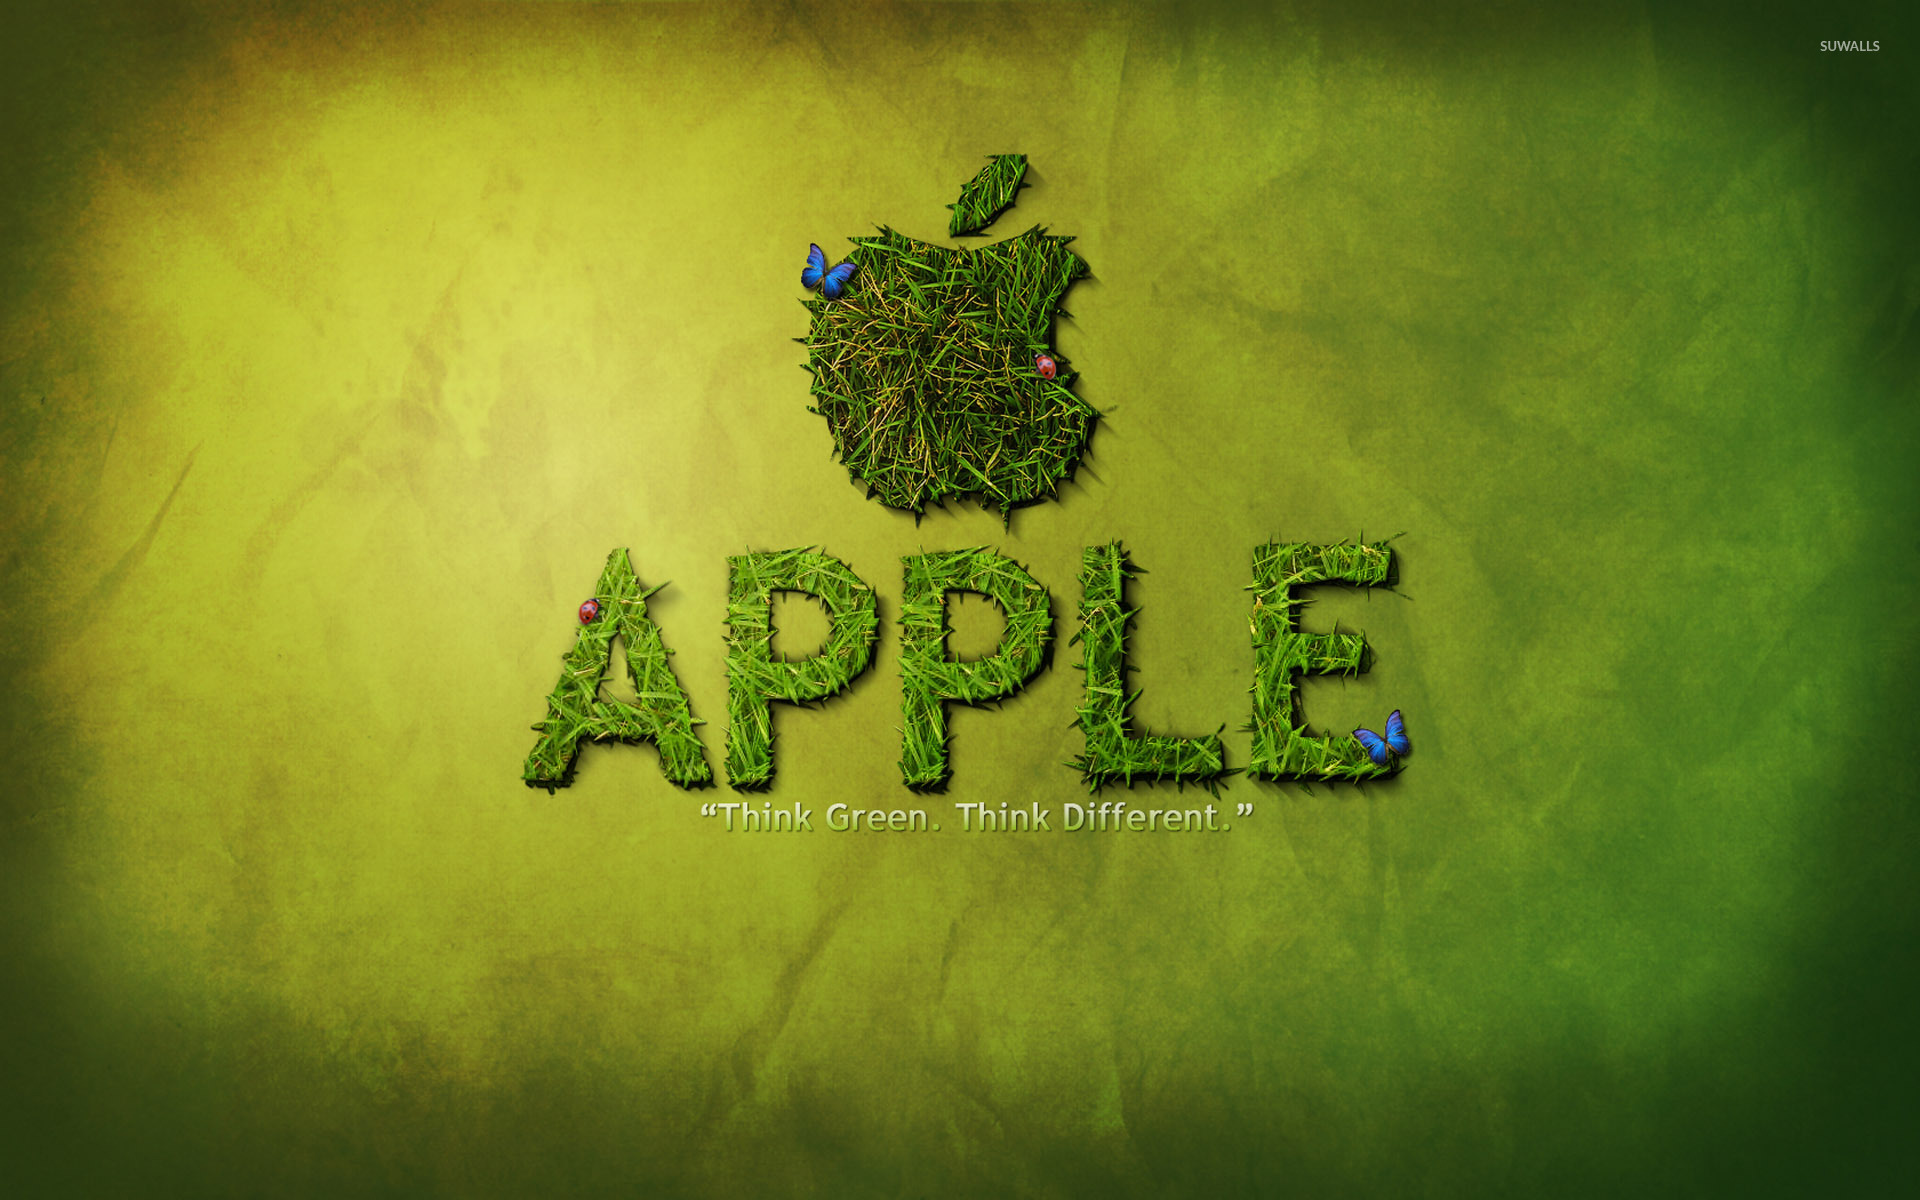 Apple Think green think different wallpaper Computer